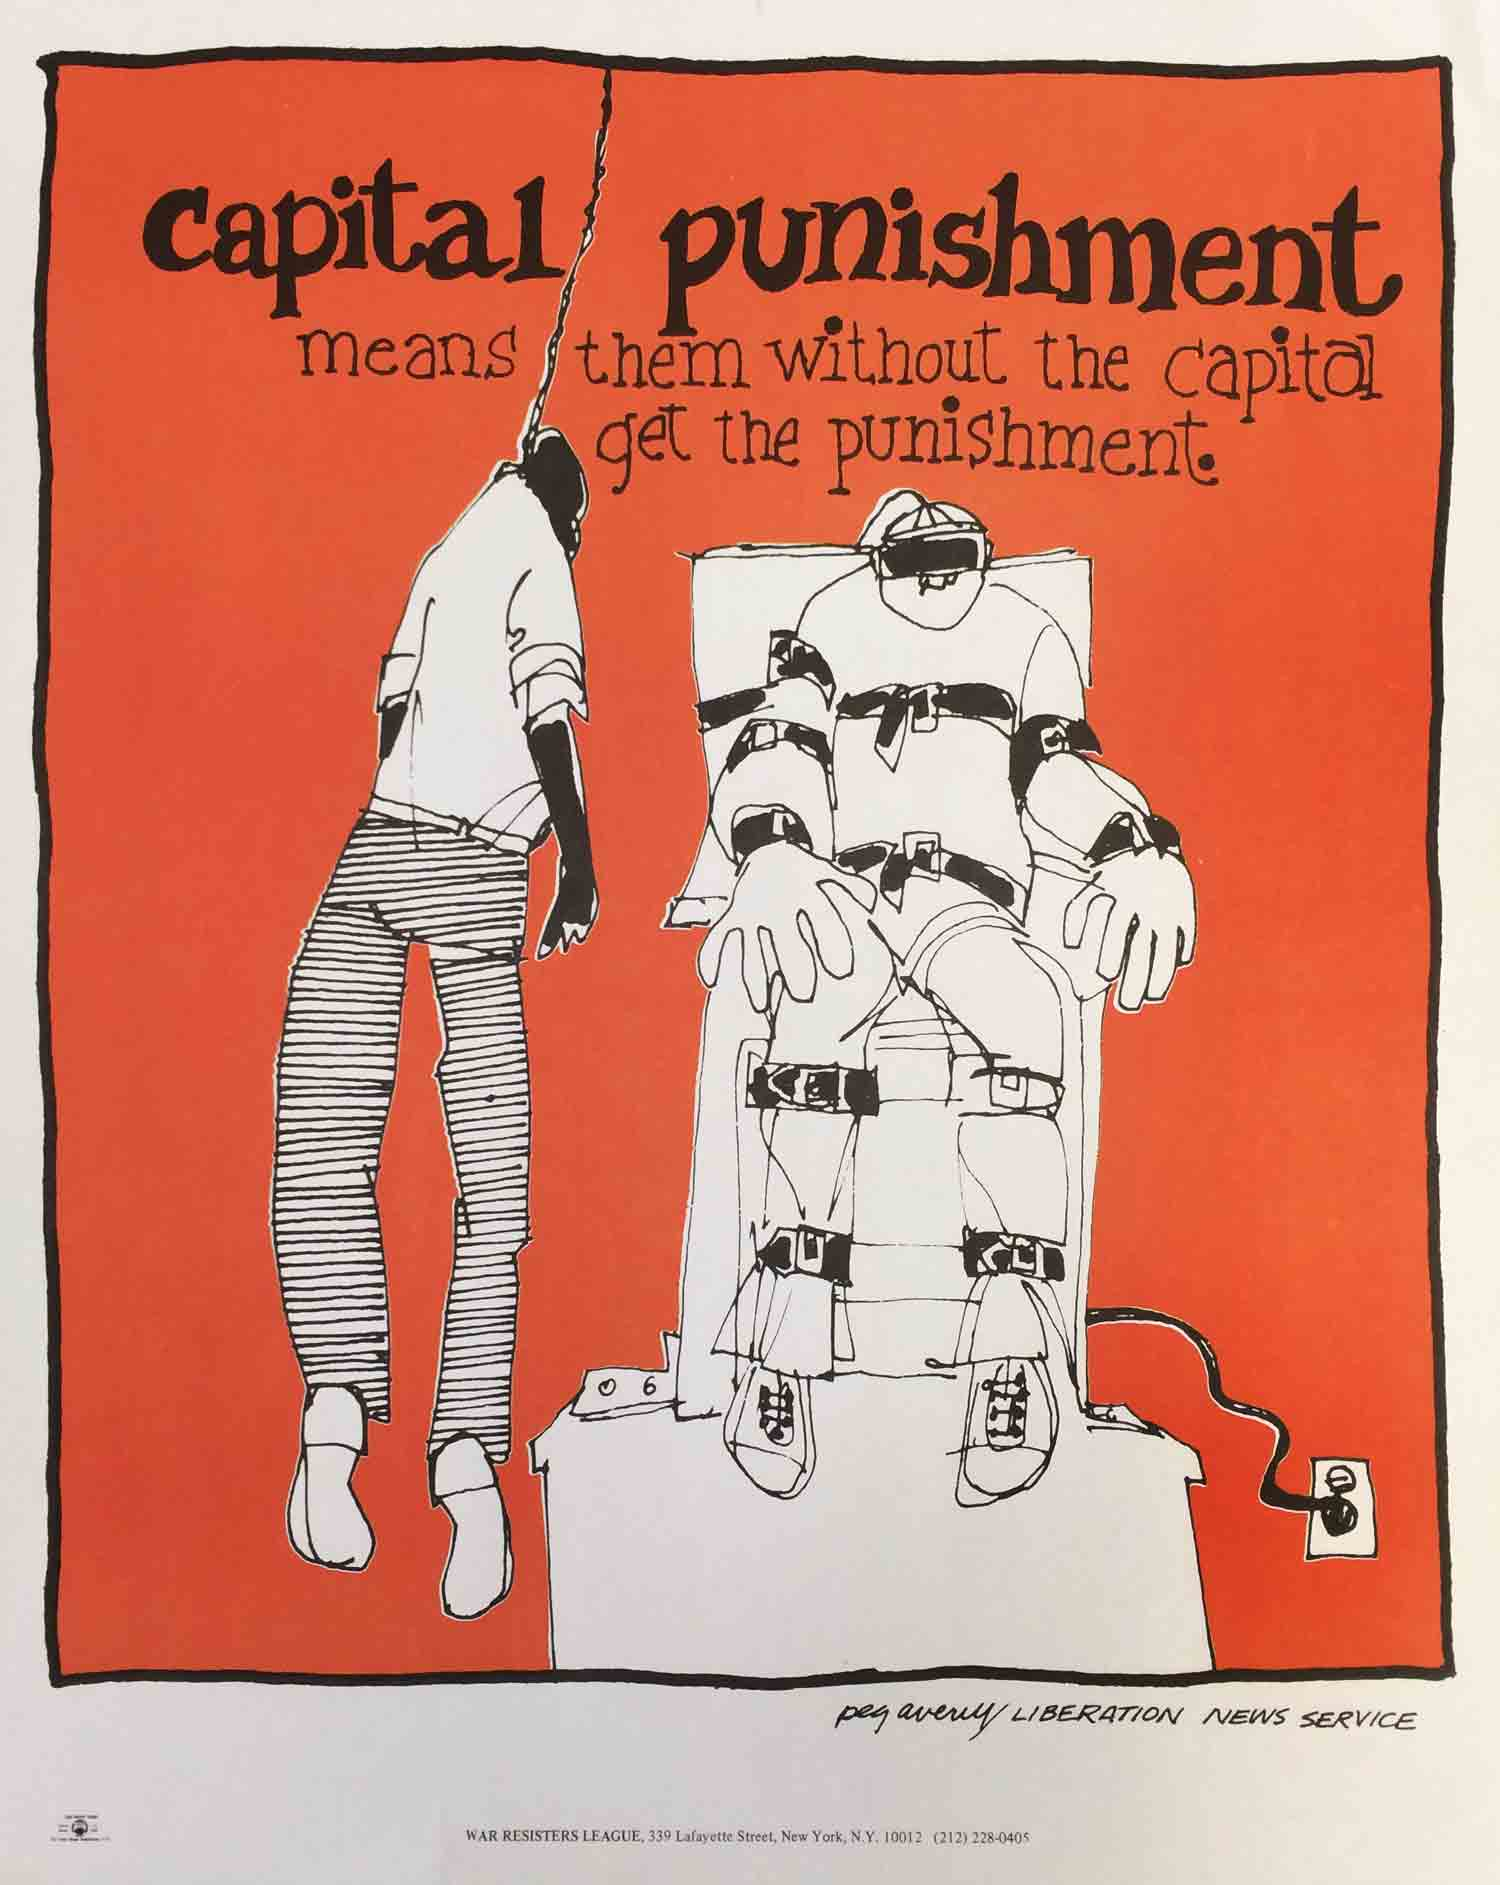 an overview of the capital punishment as the means for the discipline of the criminals Strongly support means you believe: if you answer no opinion, this question is not counted in the votematch answers for any candidate.